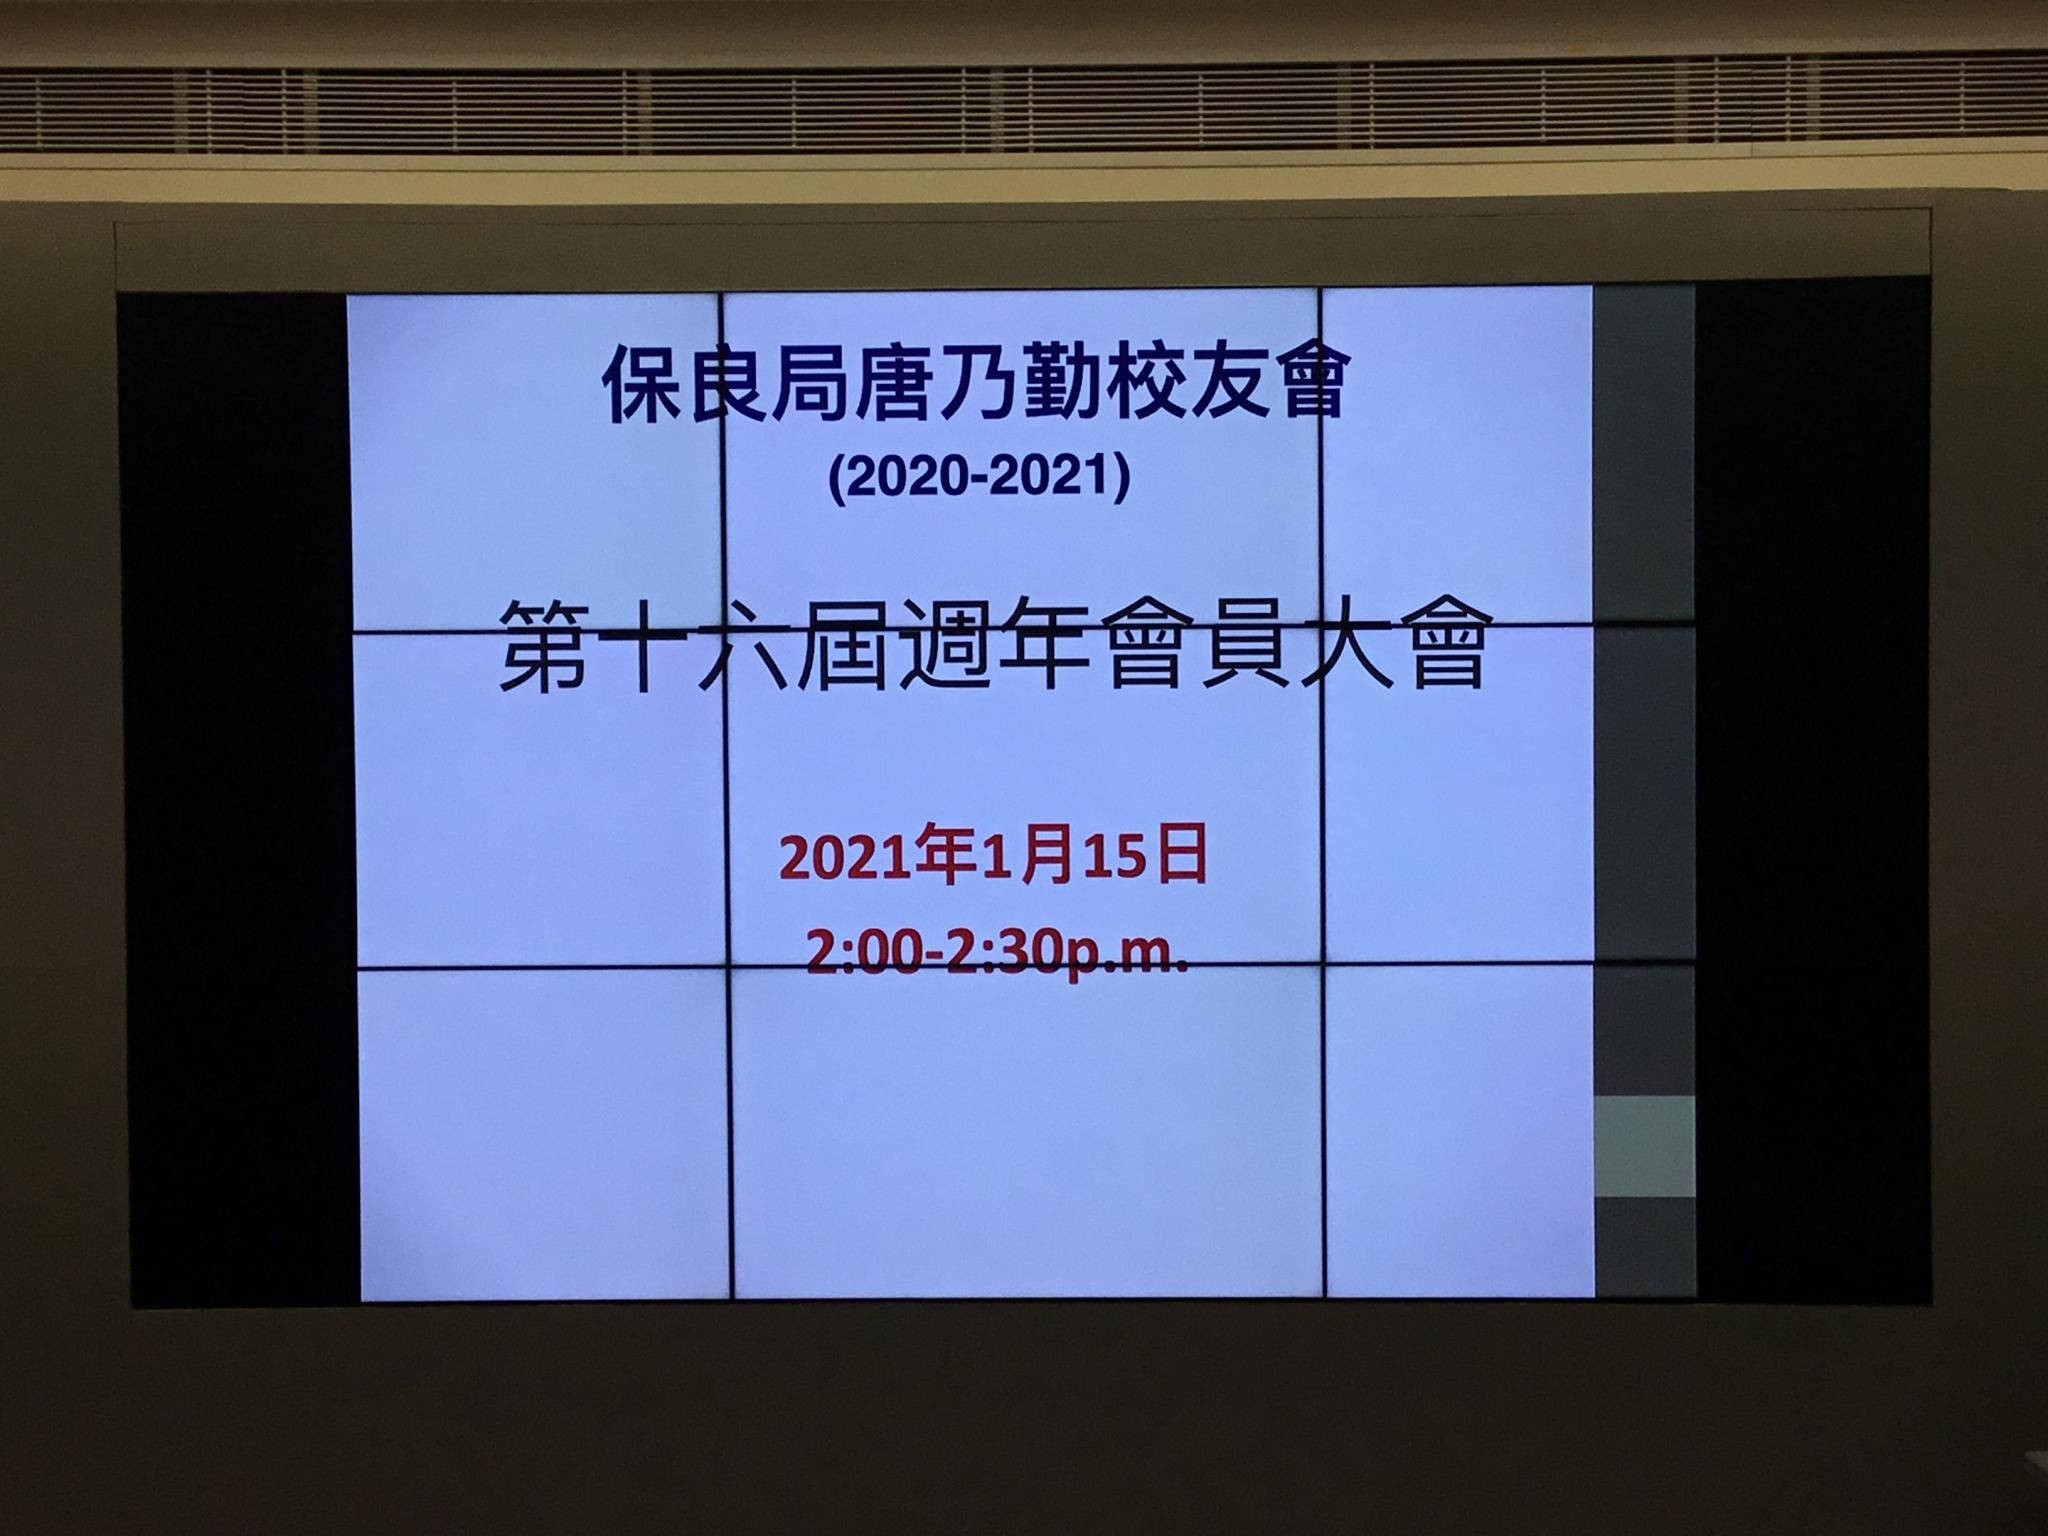 The 16th Alumni Annual General Meeting was smoothly held on 15th Jan 2021.